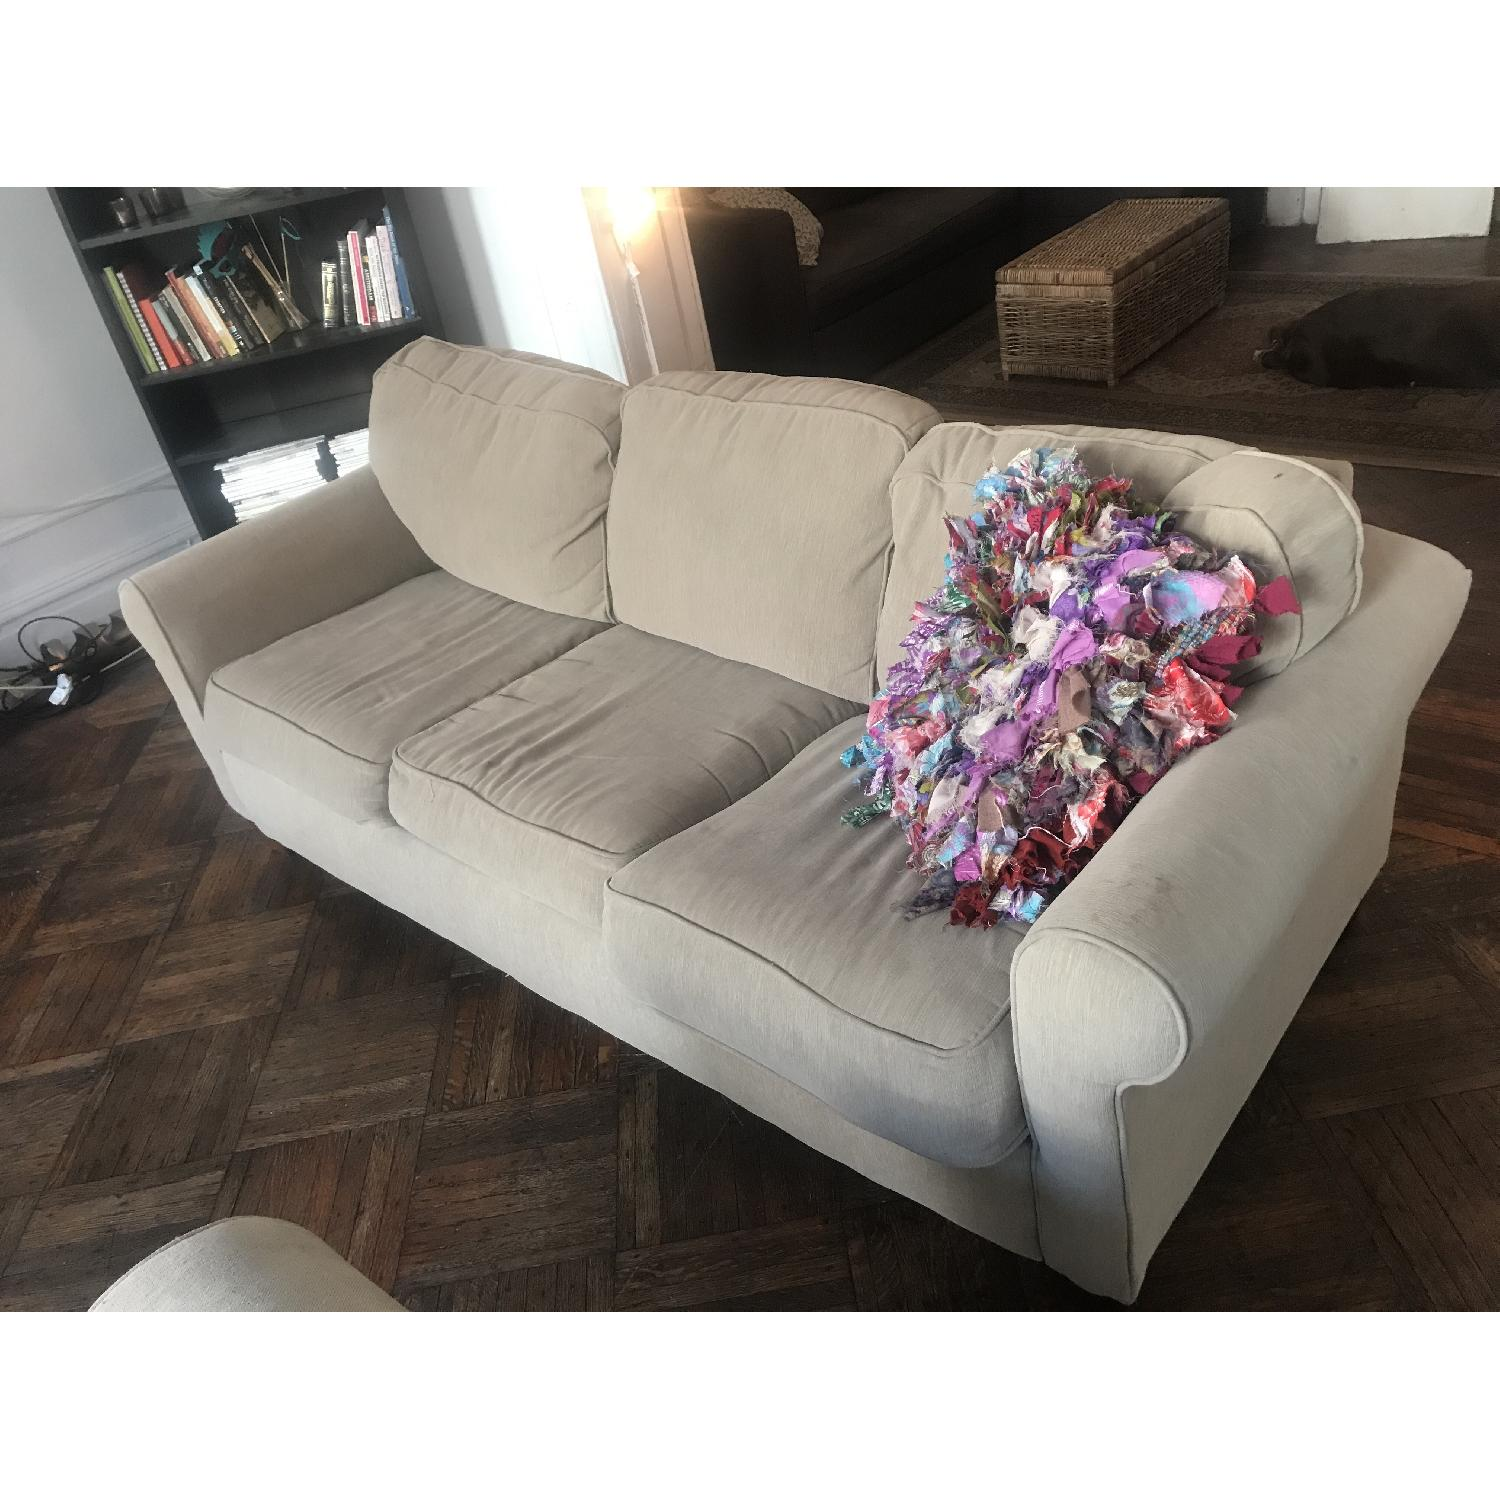 Beige Fabric Sofa w Pull Out Bed AptDeco